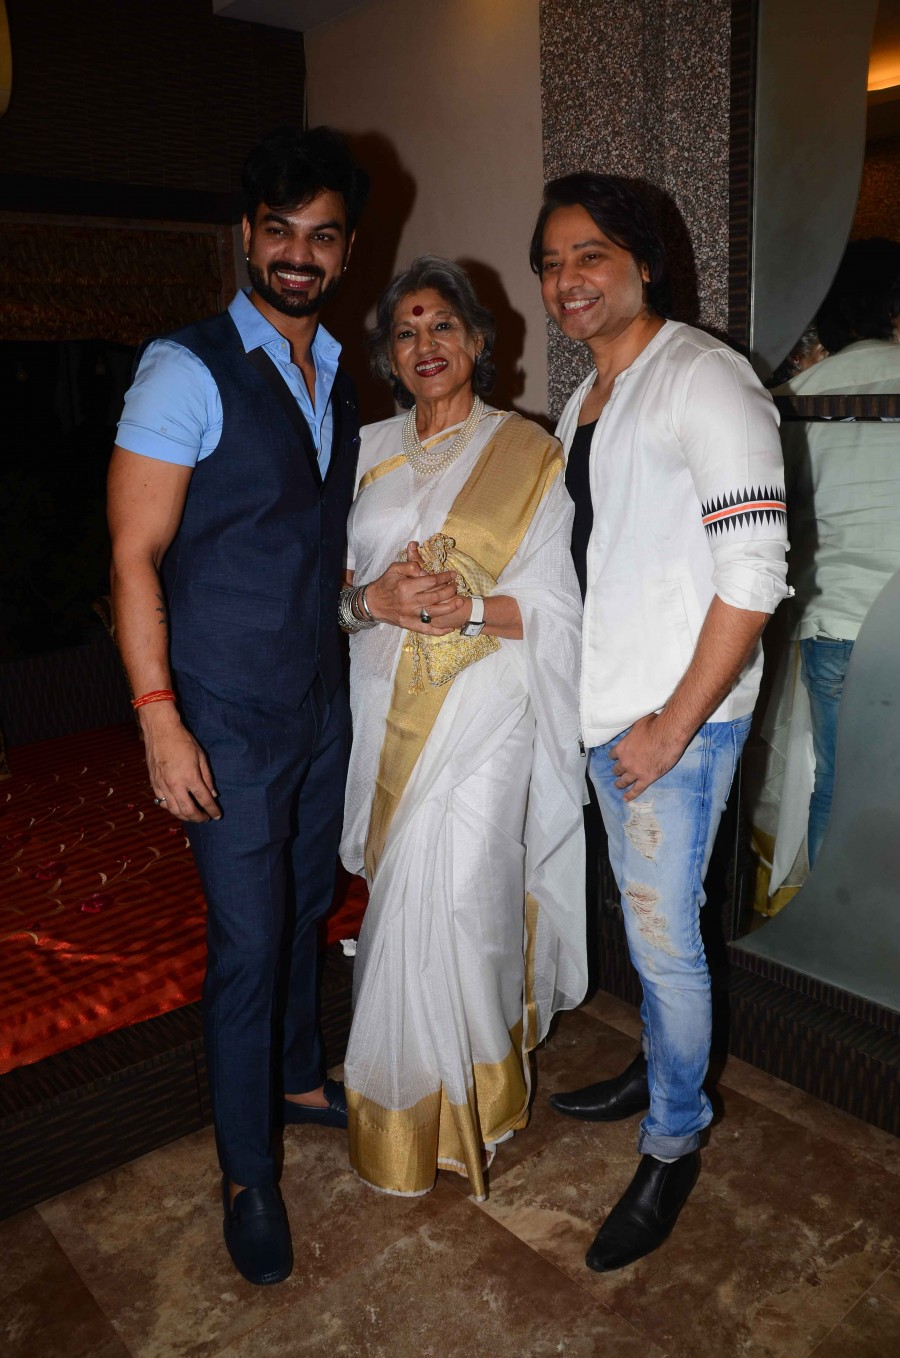 Kapil Kaustubh Sharma,Kapil Kaustubh Sharma Birthday Bash,Kapil Kaustubh Sharma Birthday celebrations,Kapil Kaustubh Sharma Birthday Bash pics,Kapil Kaustubh Sharma Birthday Bash images,Kapil Kaustubh Sharma Birthday Bash photos,Kapil Kaustubh Sharma Birt